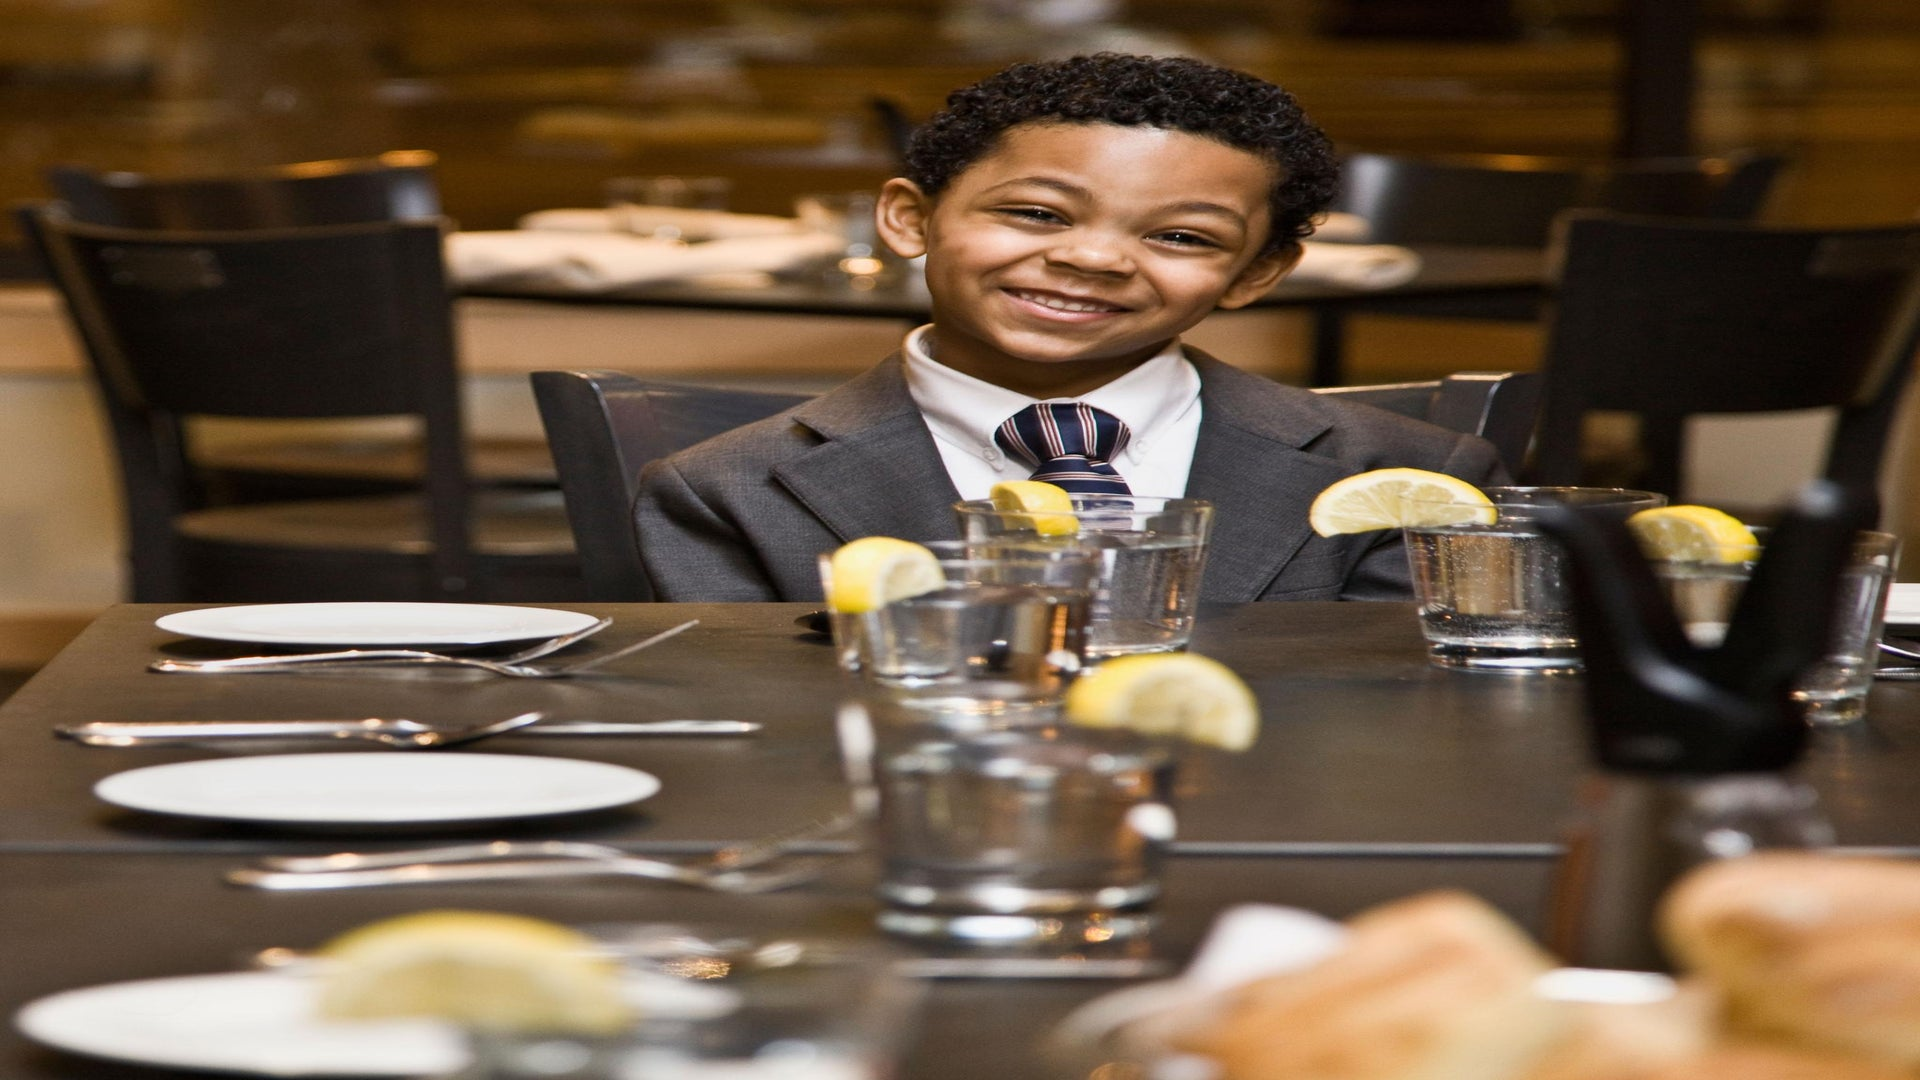 ESSENCE Poll: Is It Okay For Kids to Be Banned from Restaurants and Events?